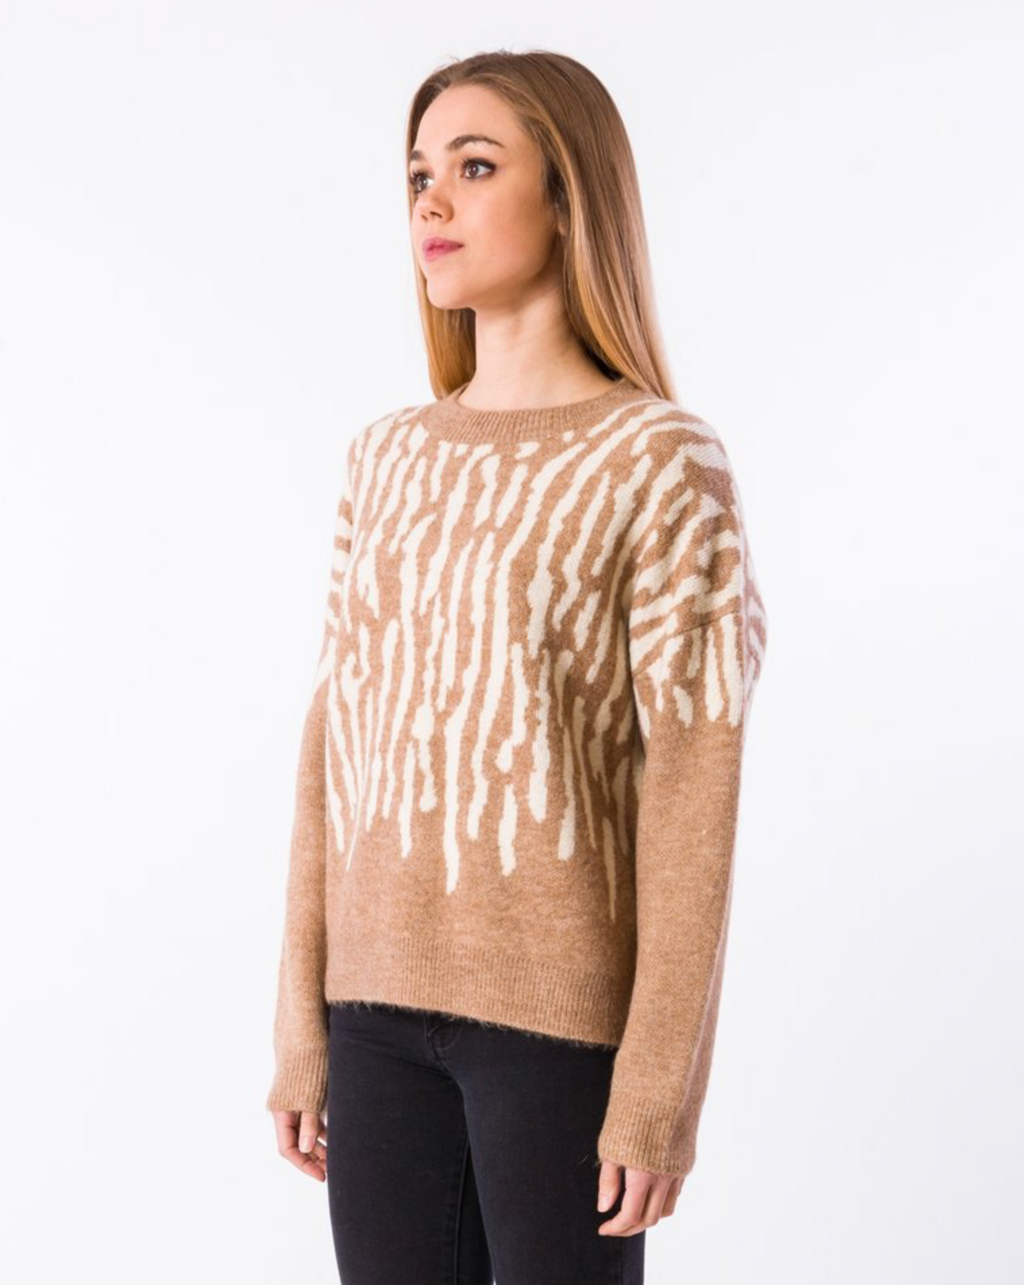 ZuZu Sweater